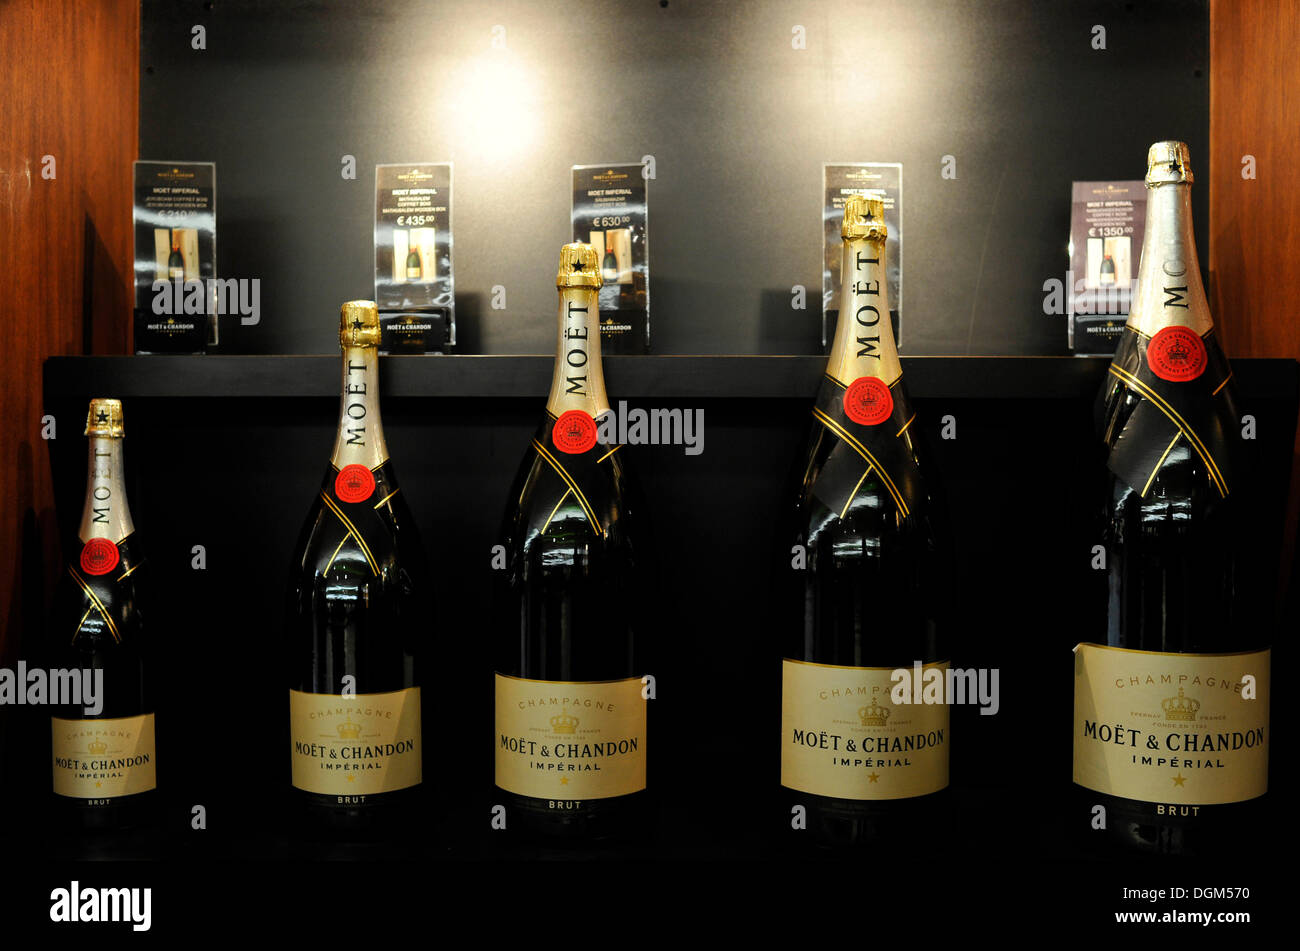 Champagne bottles in various sizes, Imperial, Moet et Chandon winery, LVMH luxury goods group, Louis Vuitton Moet - Stock Image